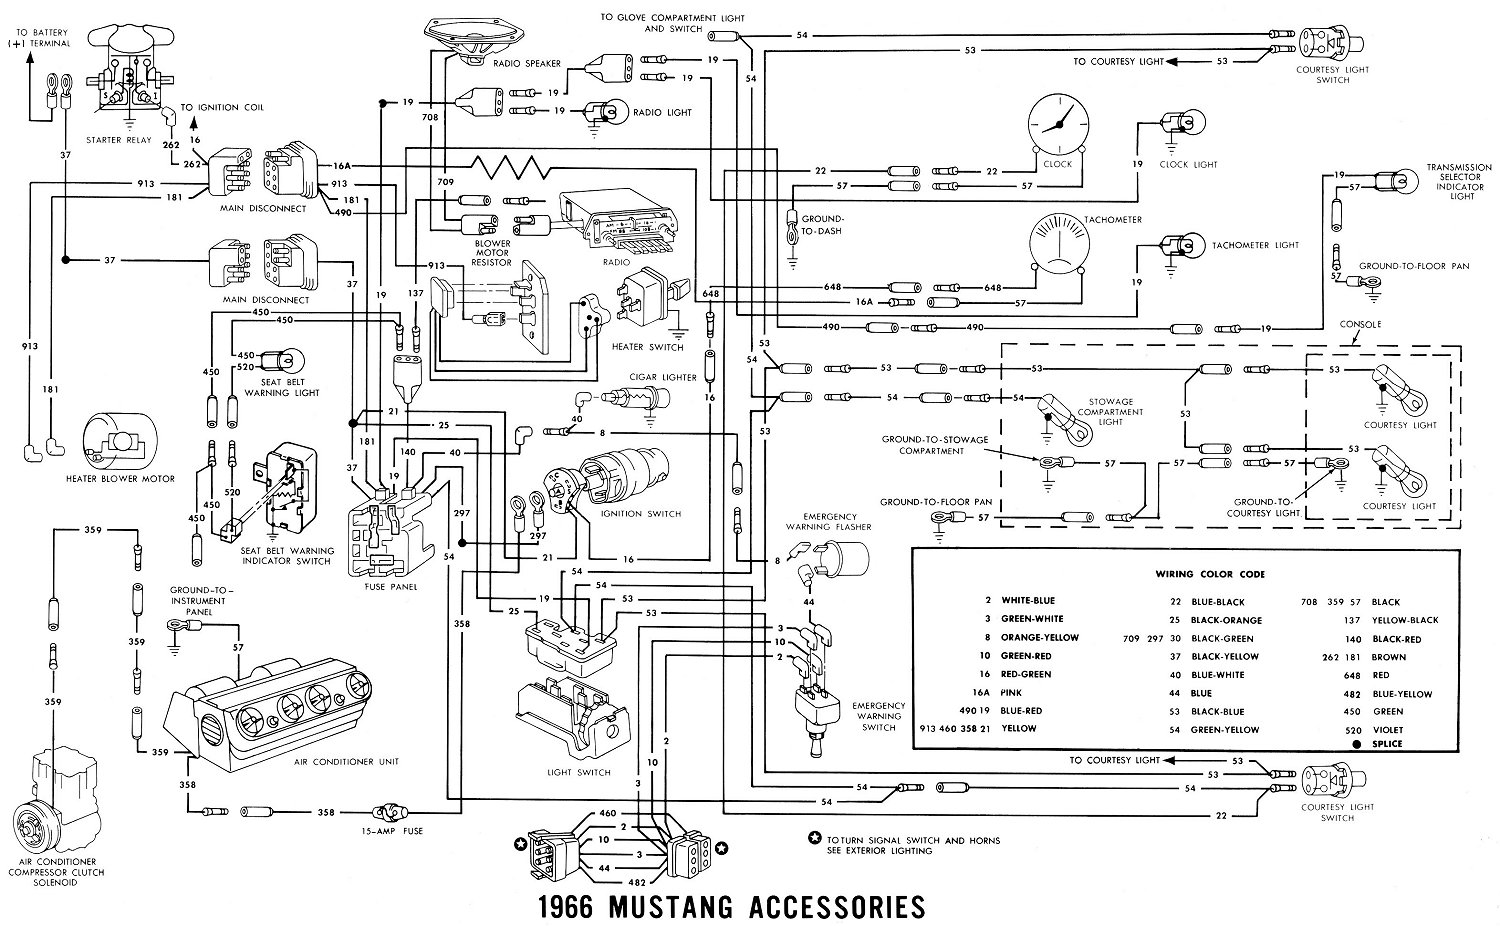 66acces1 1968 mustang wiring diagram manual 68 mustang ignition wiring 1969 Mustang Wiring Diagram PDF at suagrazia.org